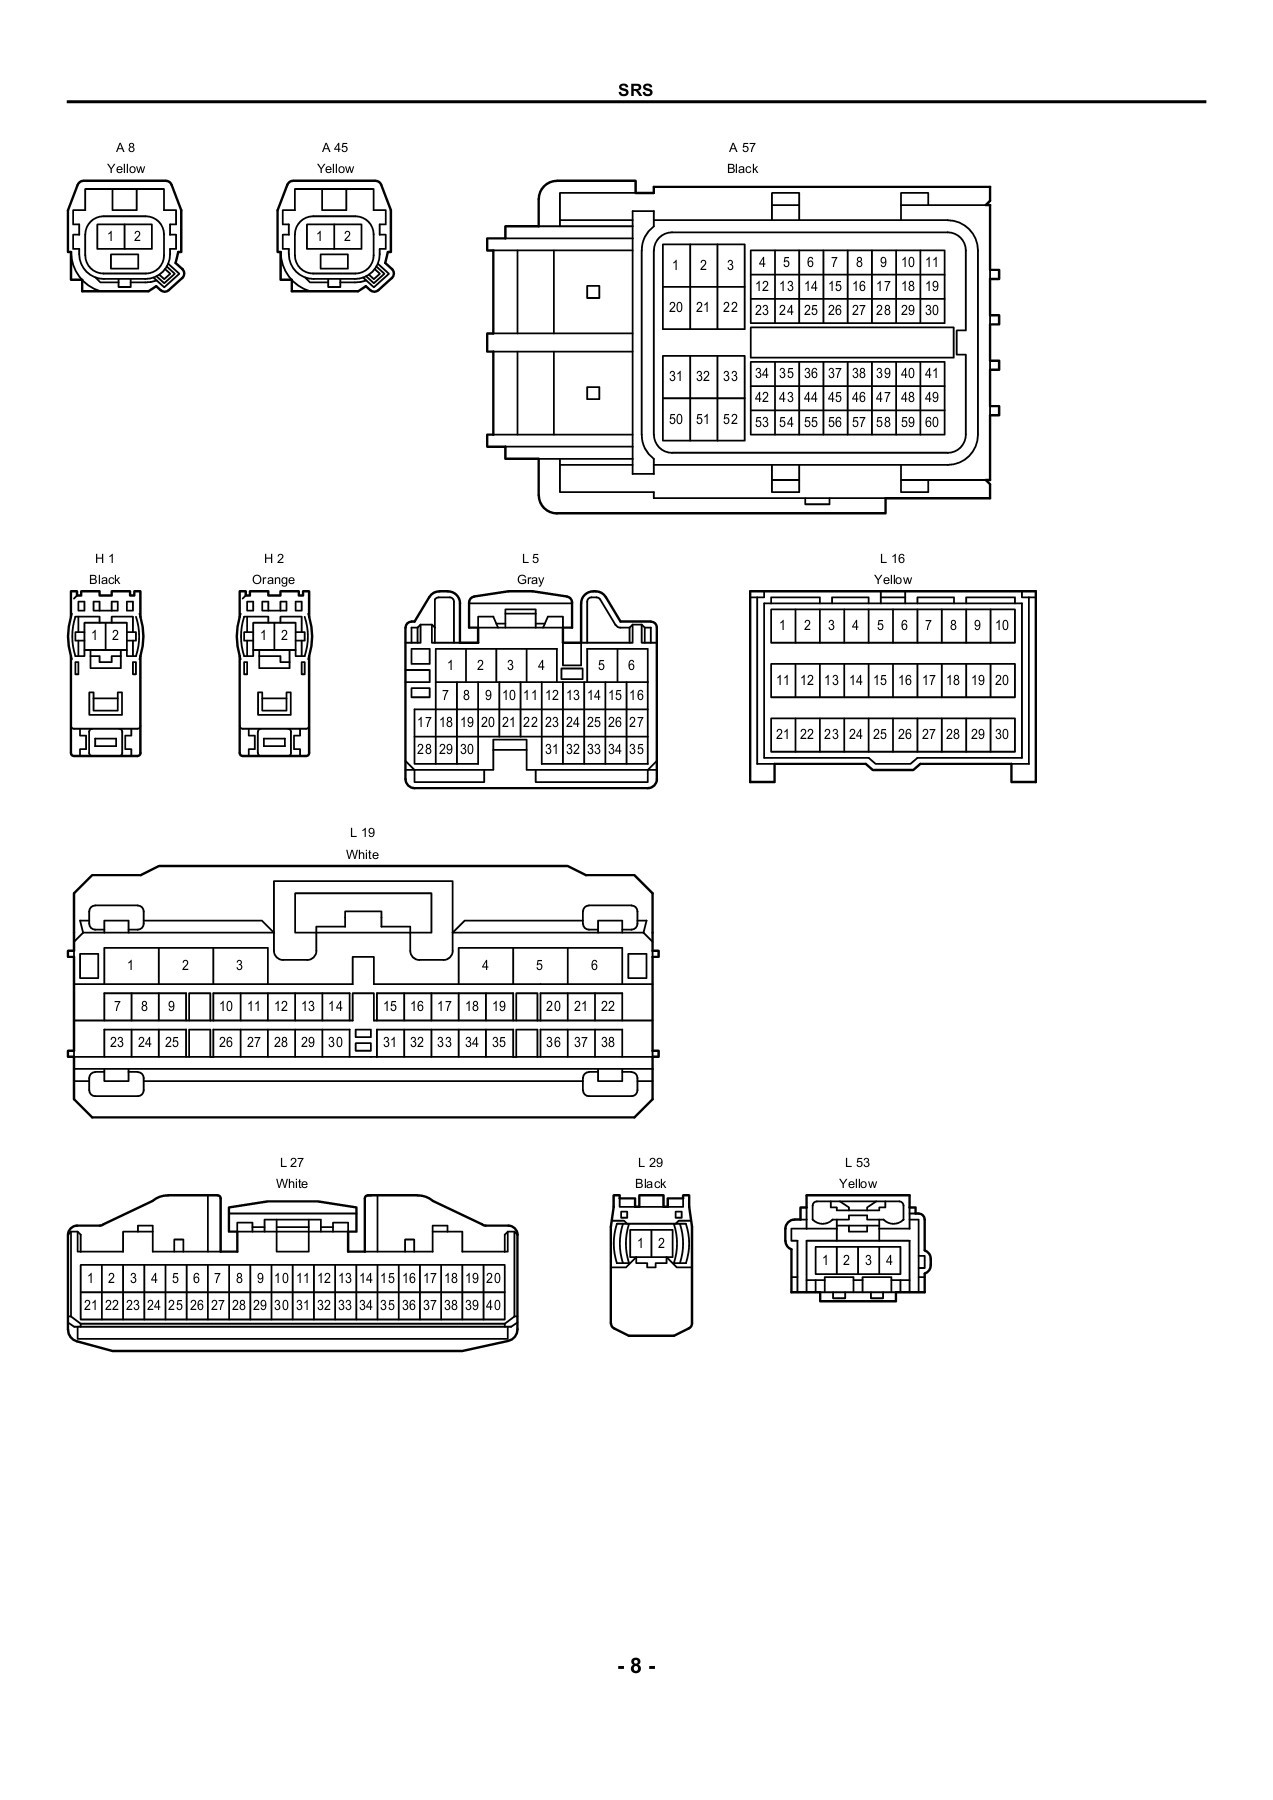 toyota prius 2010 electrical wiring diagrams pages 451 466 text toyota prius 2010 electrical wiring diagrams [ 1273 x 1800 Pixel ]